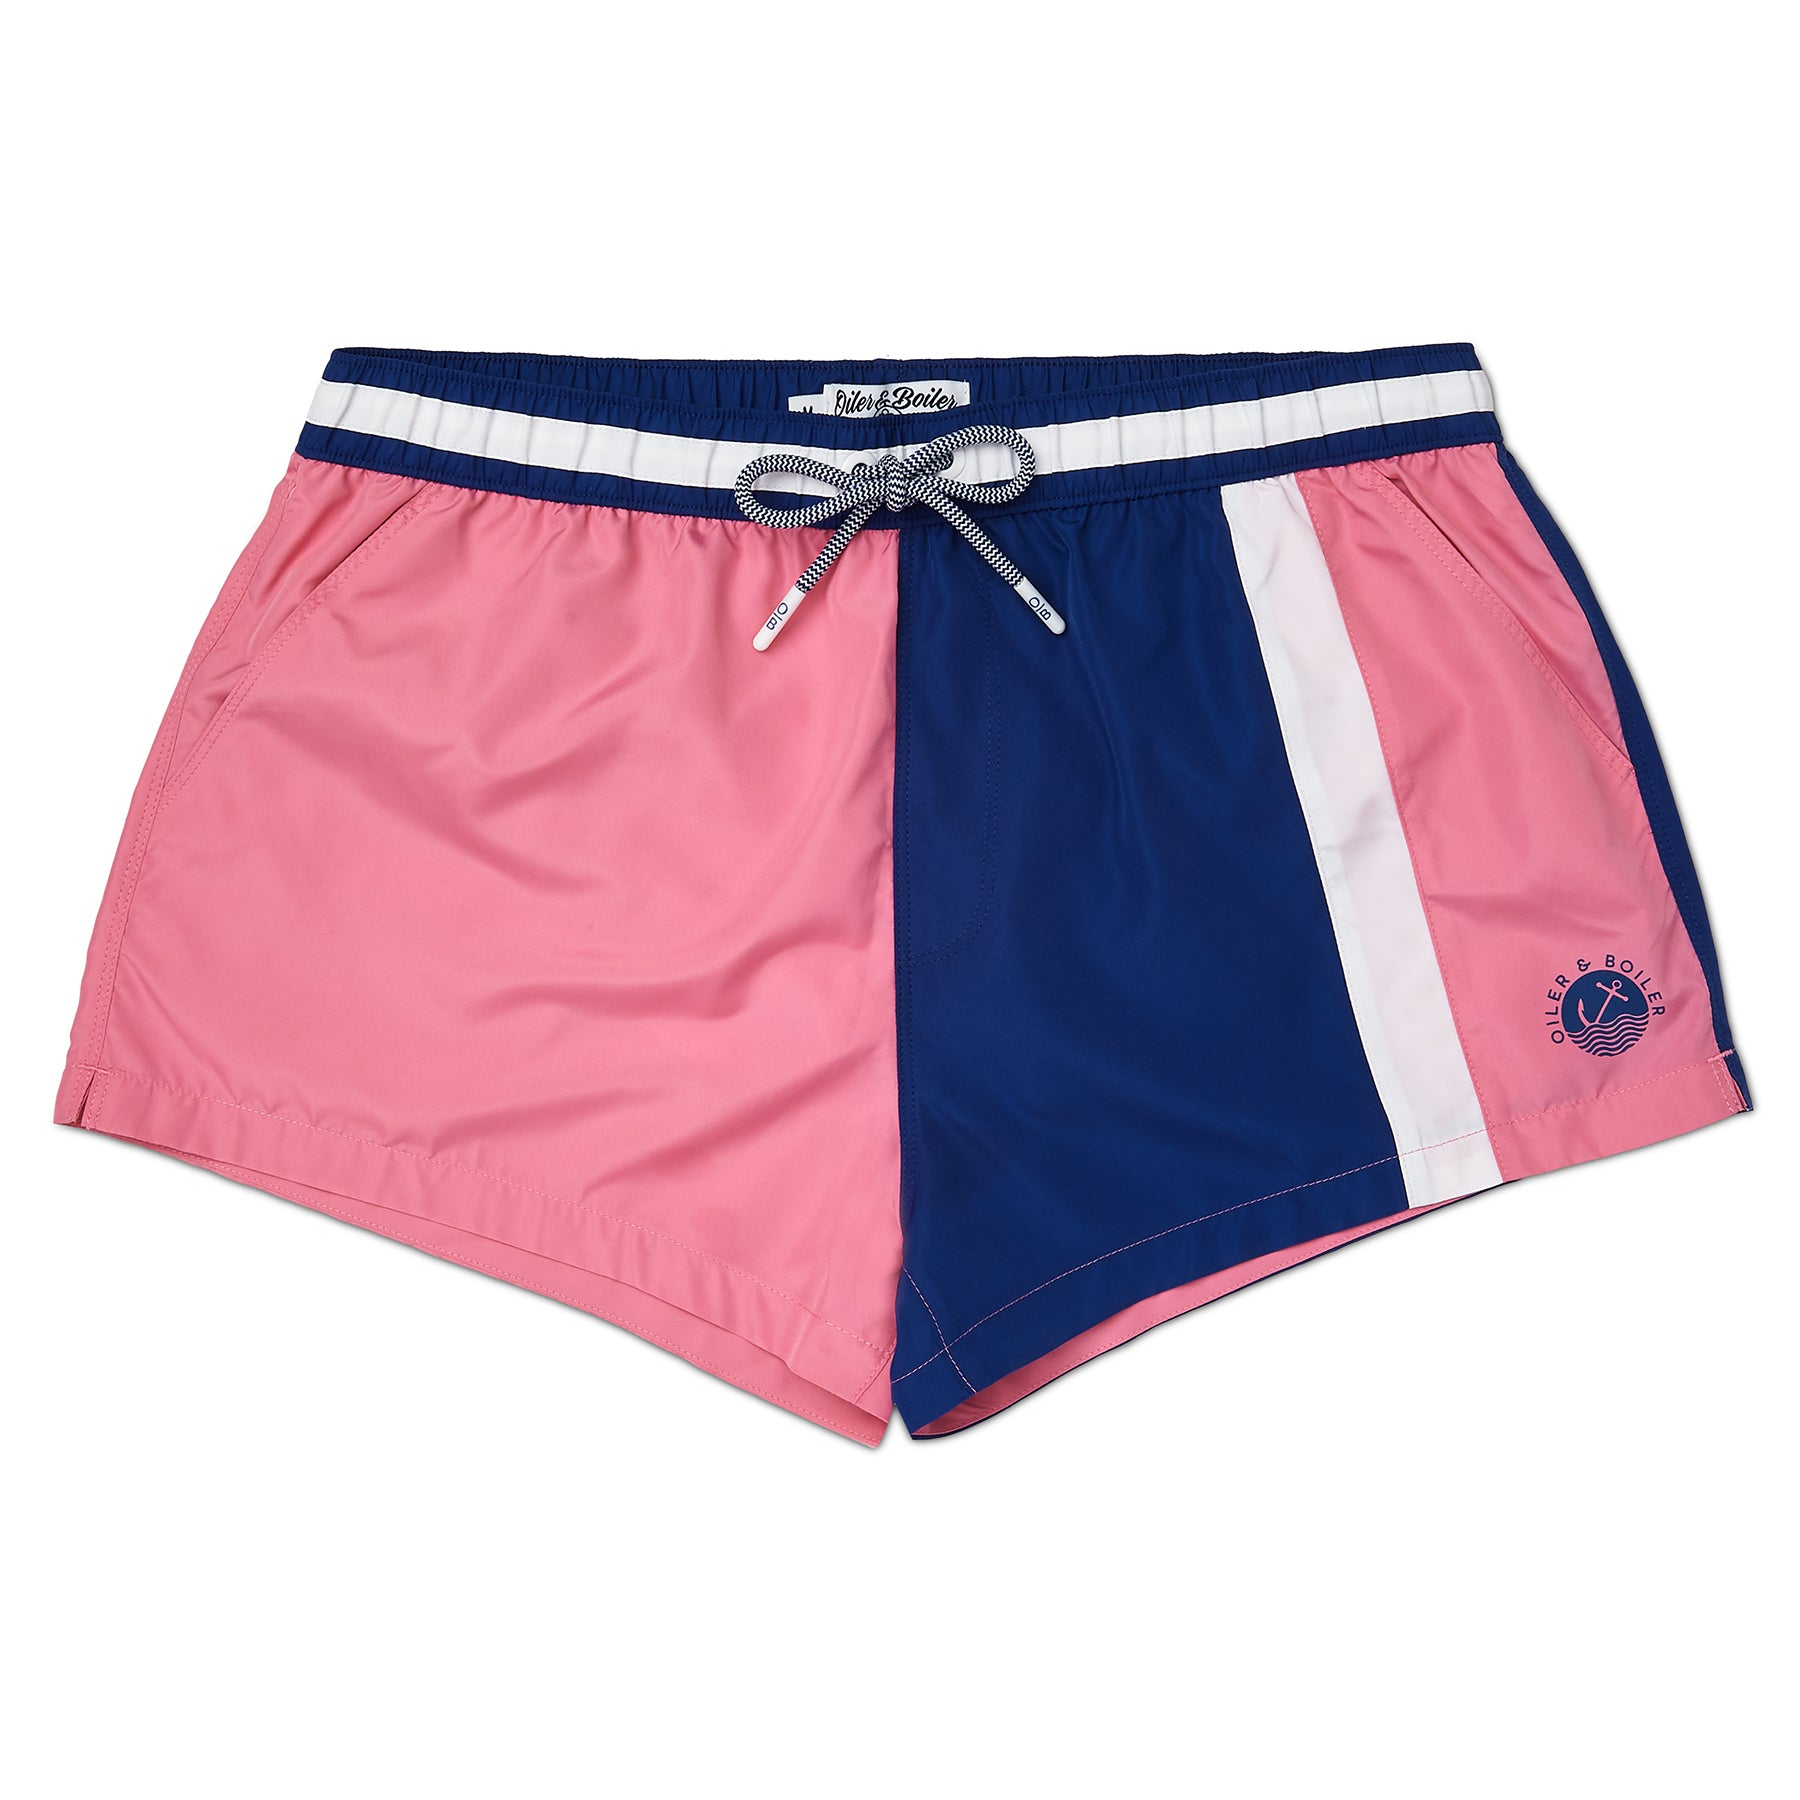 Pink Colour Block Swim Short, Shorter Length